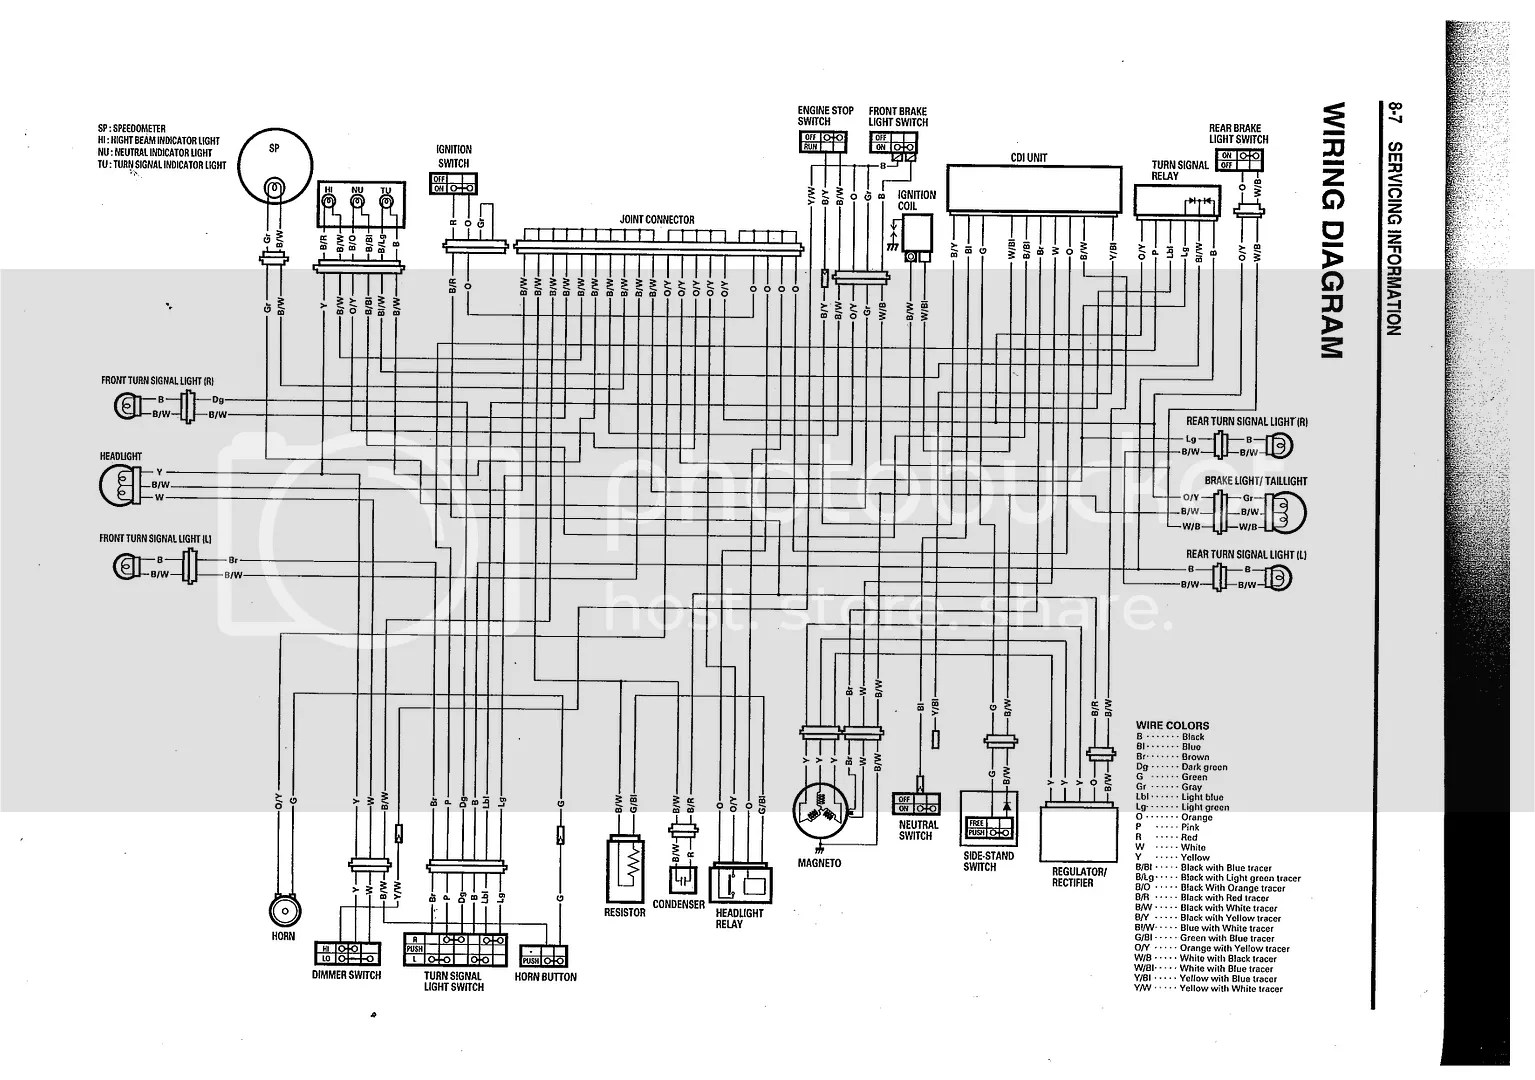 hight resolution of tl1000r wiring diagram my wiring diagram1999 suzuki tl1000r wiring diagram wiring diagram article review 98 suzuki